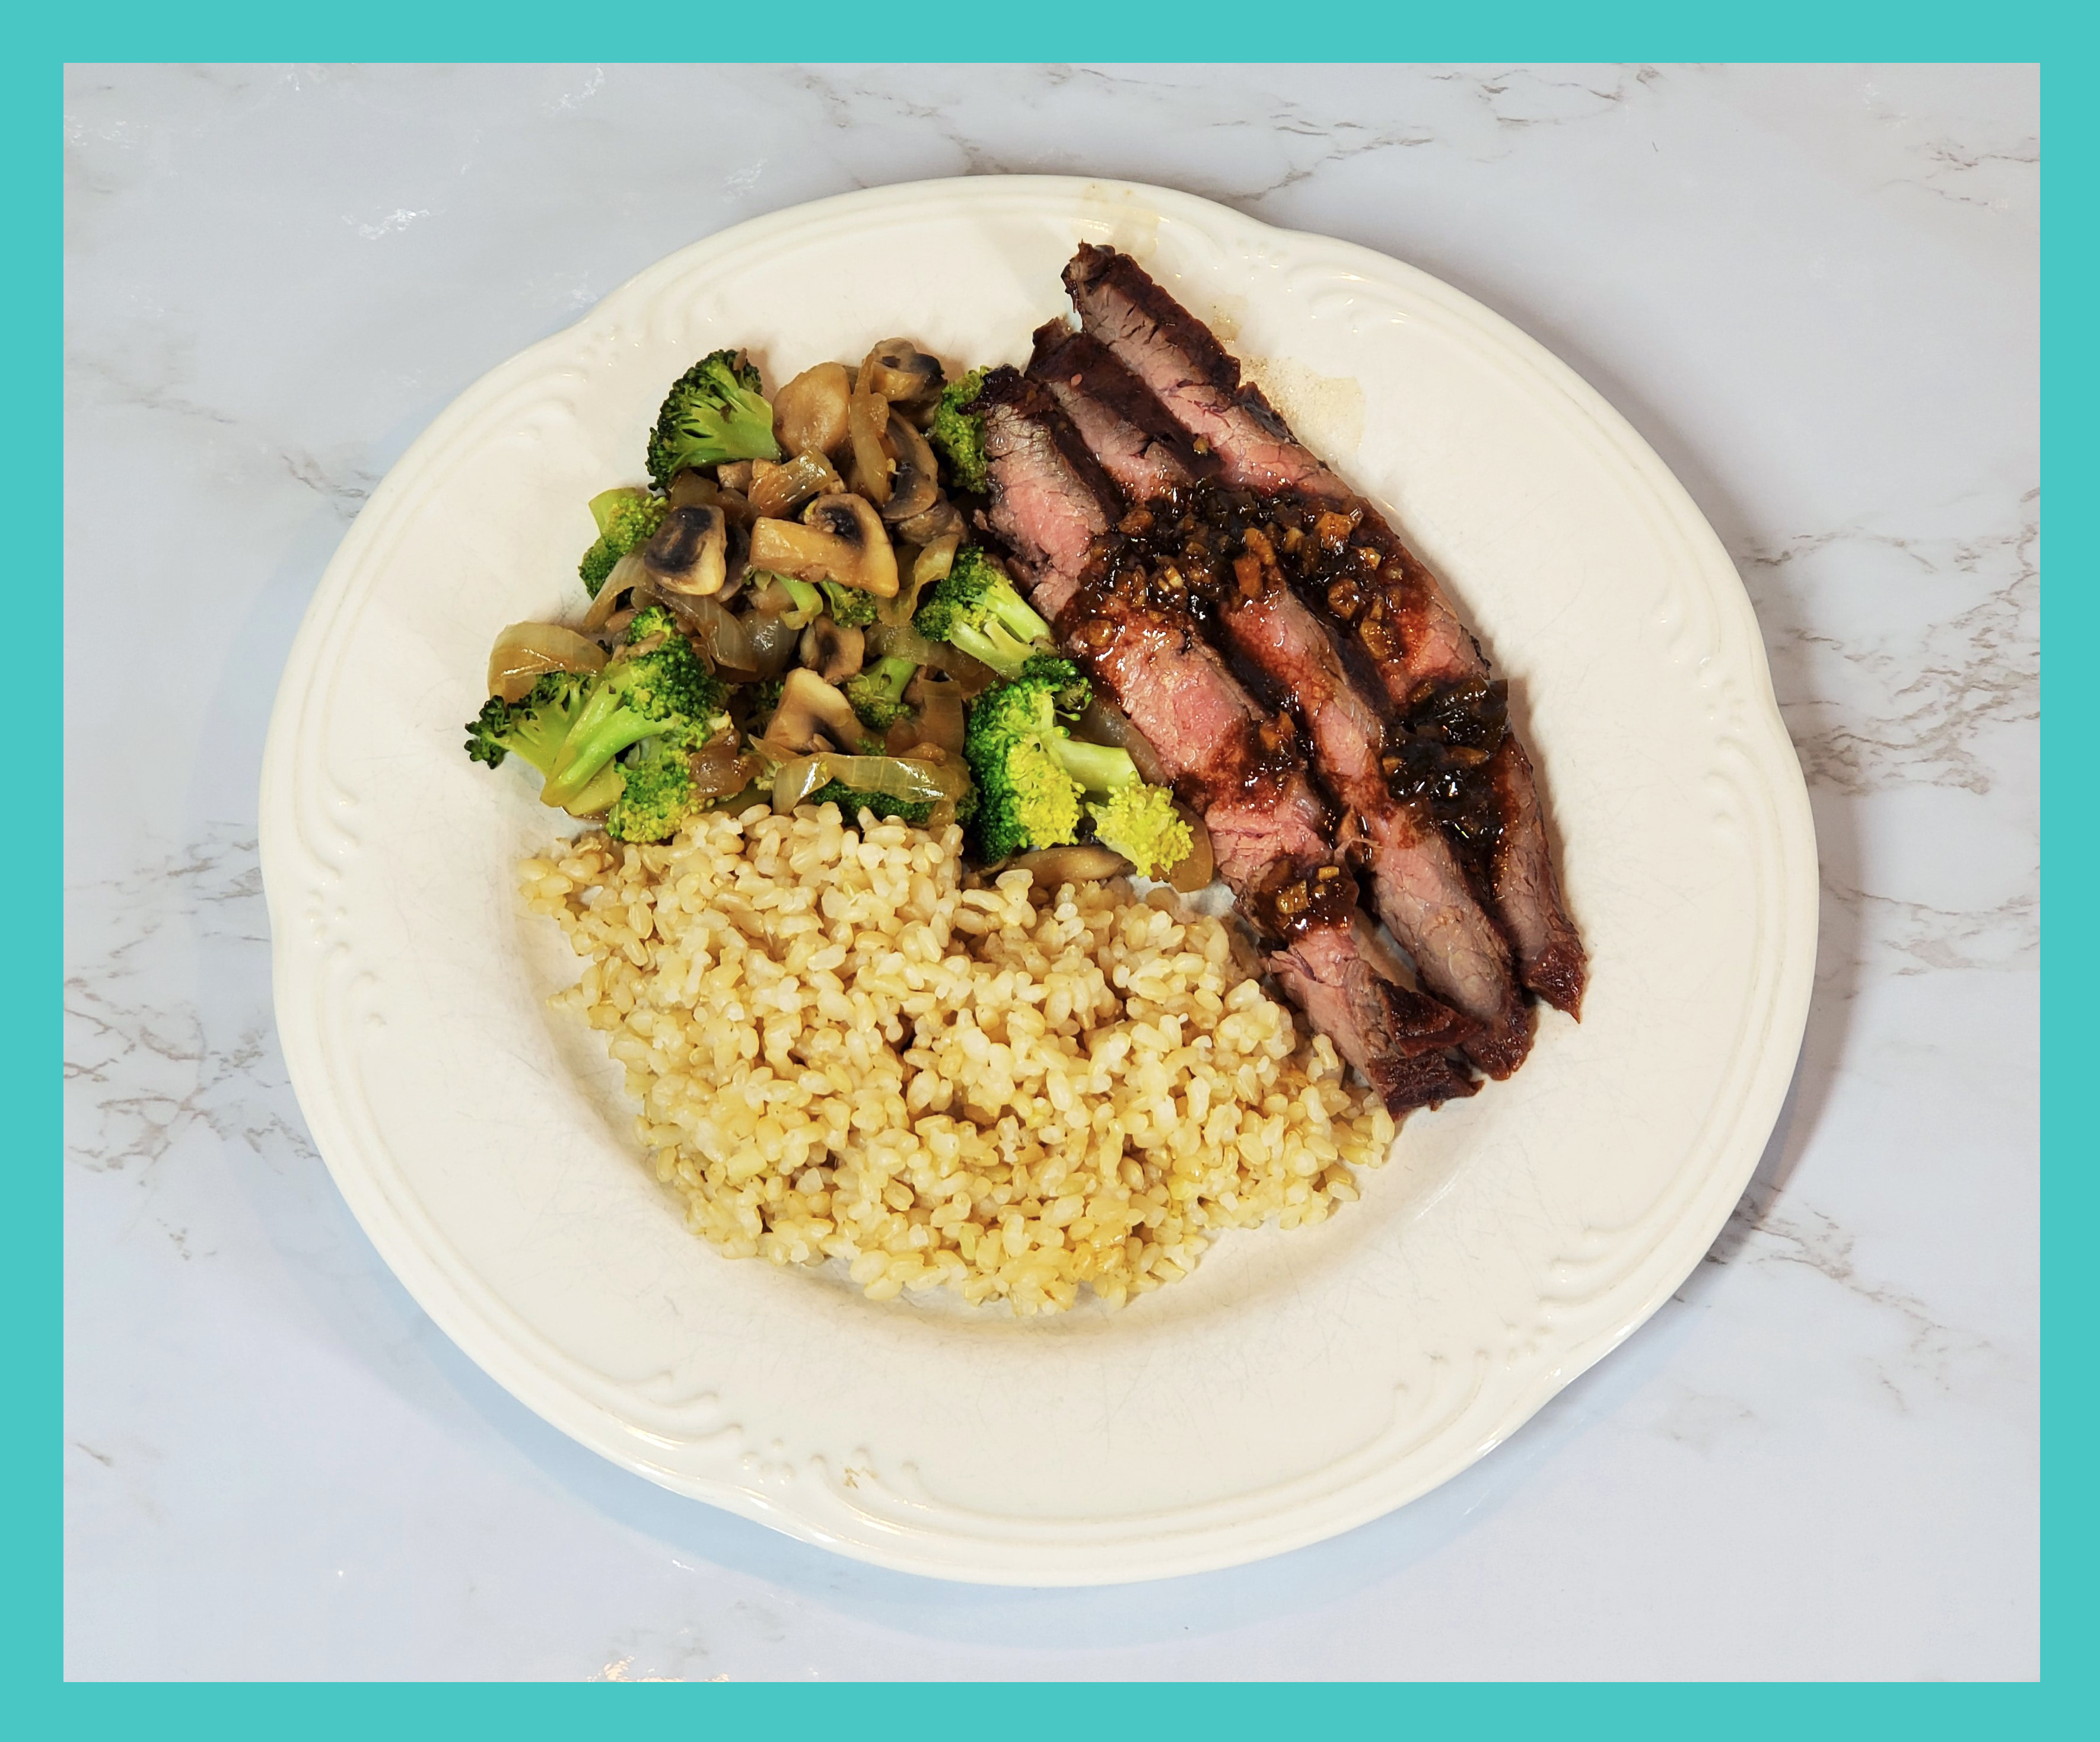 Flank Steak drizzled in sauce on a white plate with short grain brown rice, broccoli/mushrooms/onions. On a white marble background.